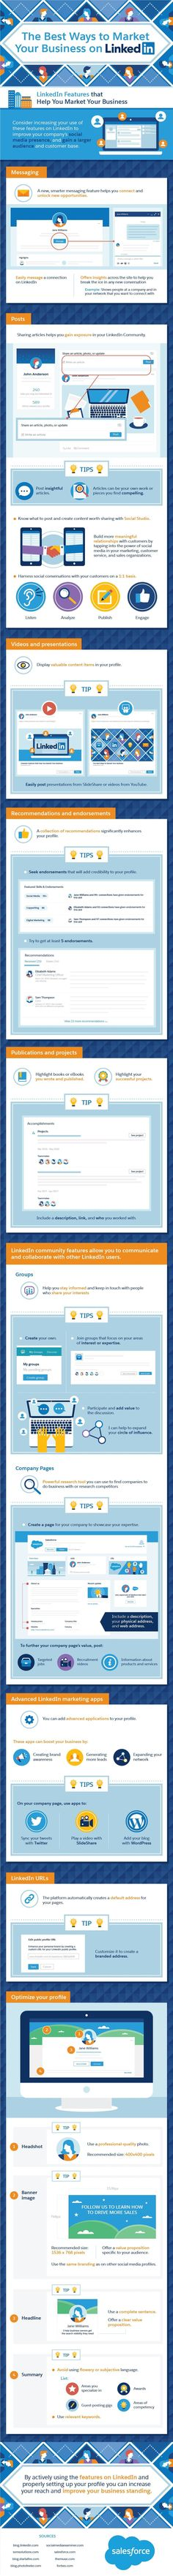 The Best Ways to Market Your #Business on #LinkedIn #Infographic #SocialMedia #Marketing